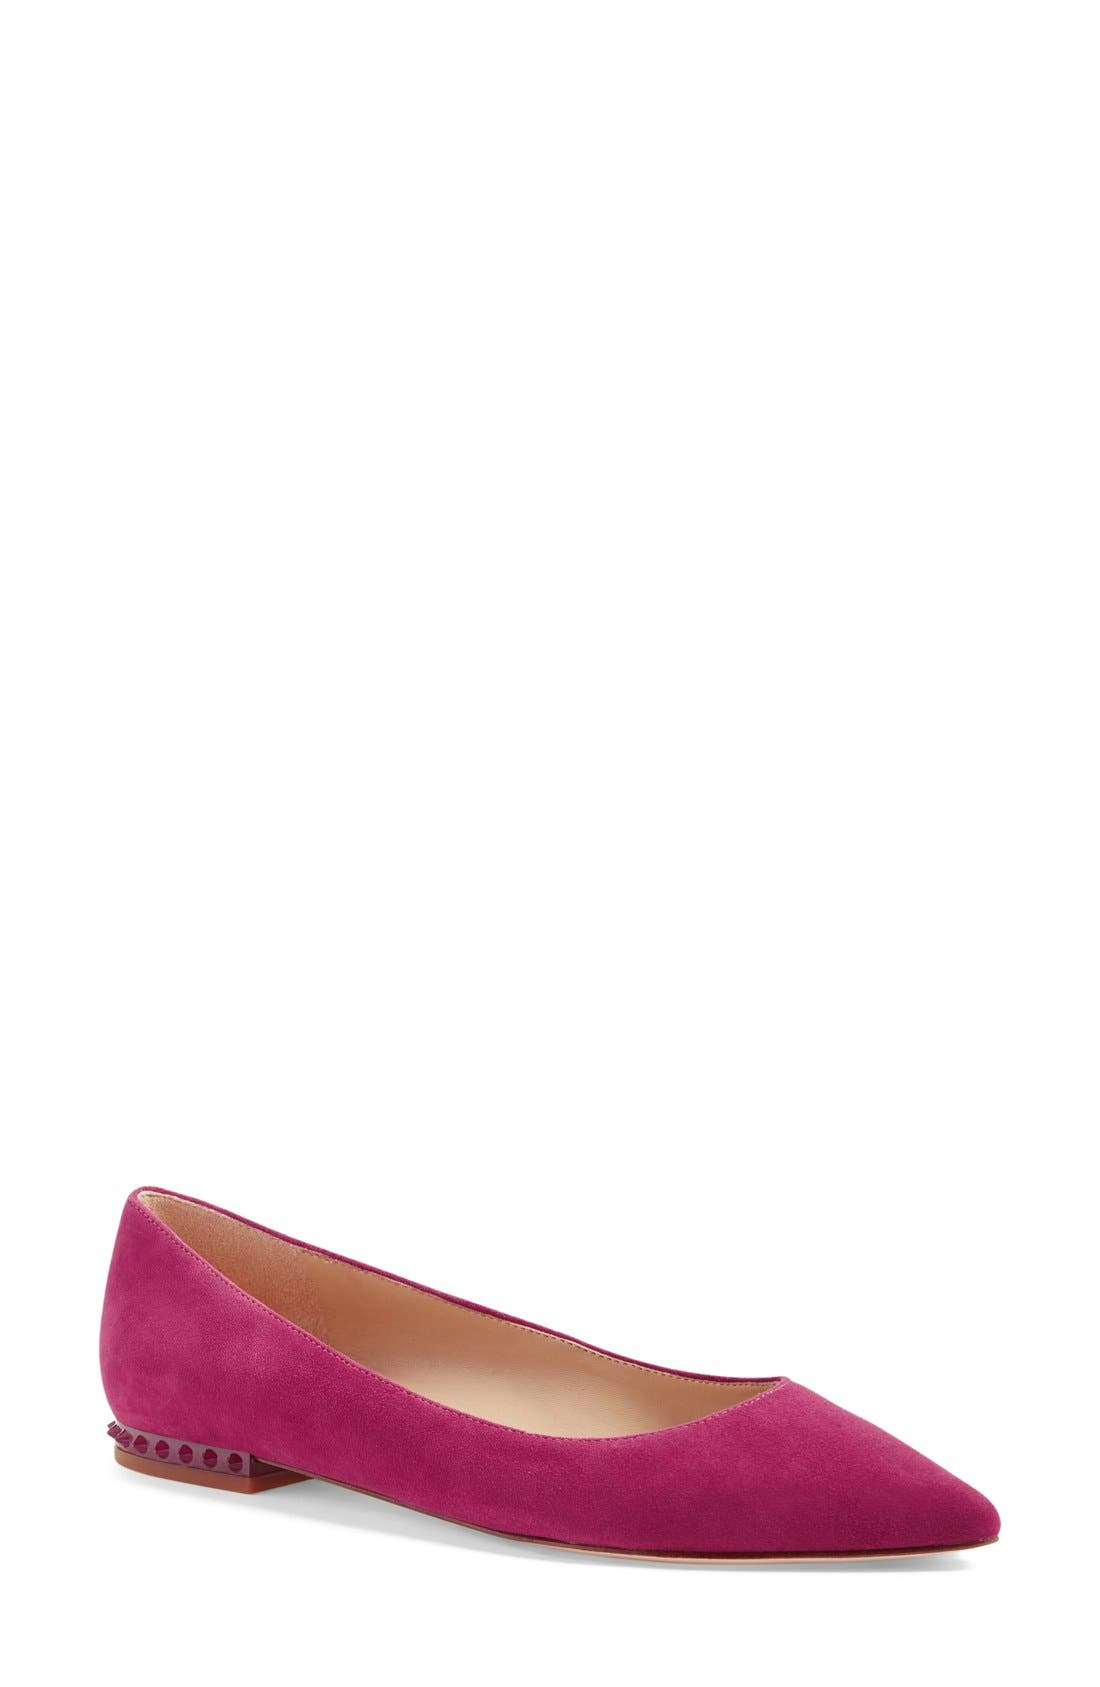 'Reyanne' Spike Rand Pointy Toe Flat,                         Main,                         color, Pink Garnet Suede